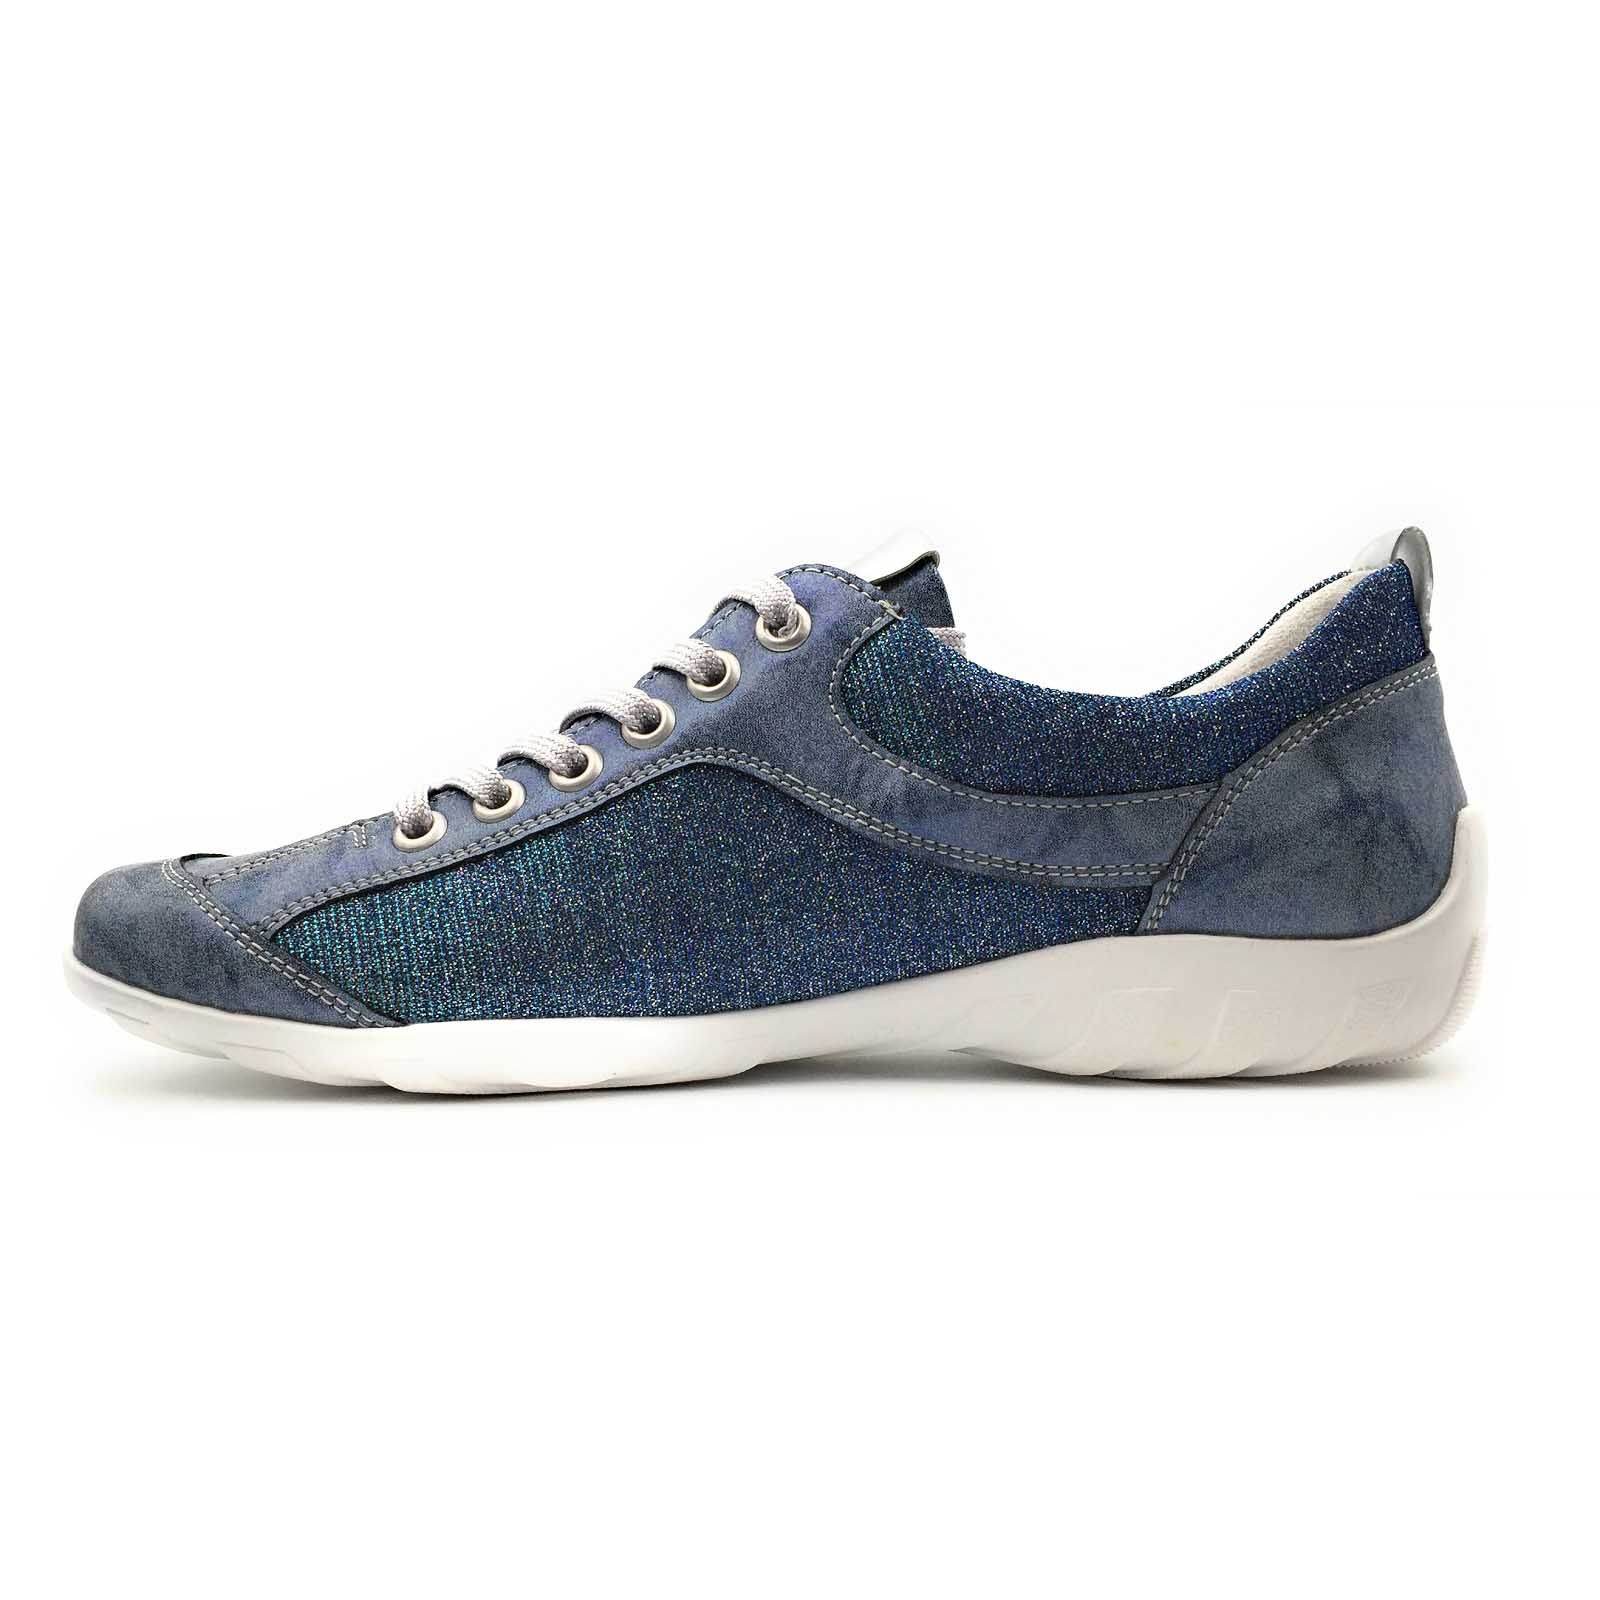 Remonte baskets mode r3400 bleu8066701_6